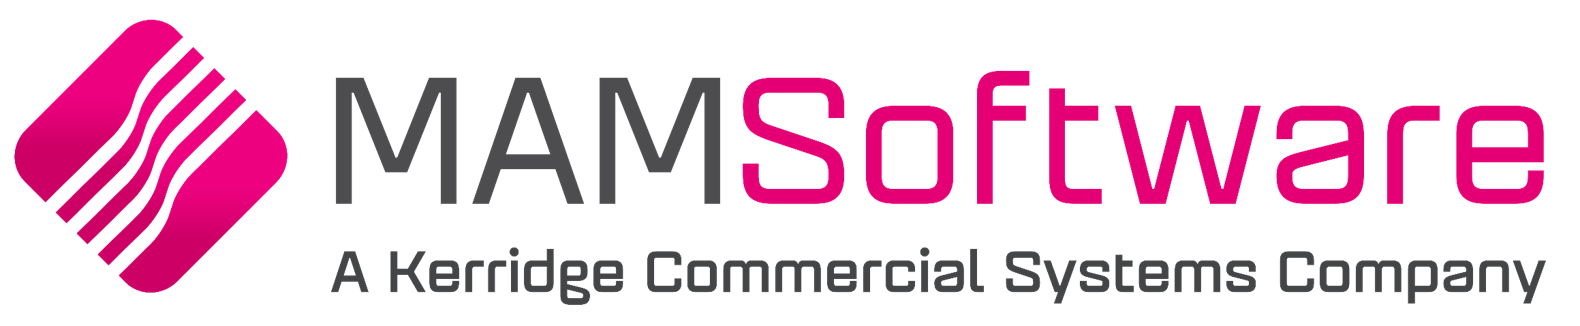 MAM Software USA